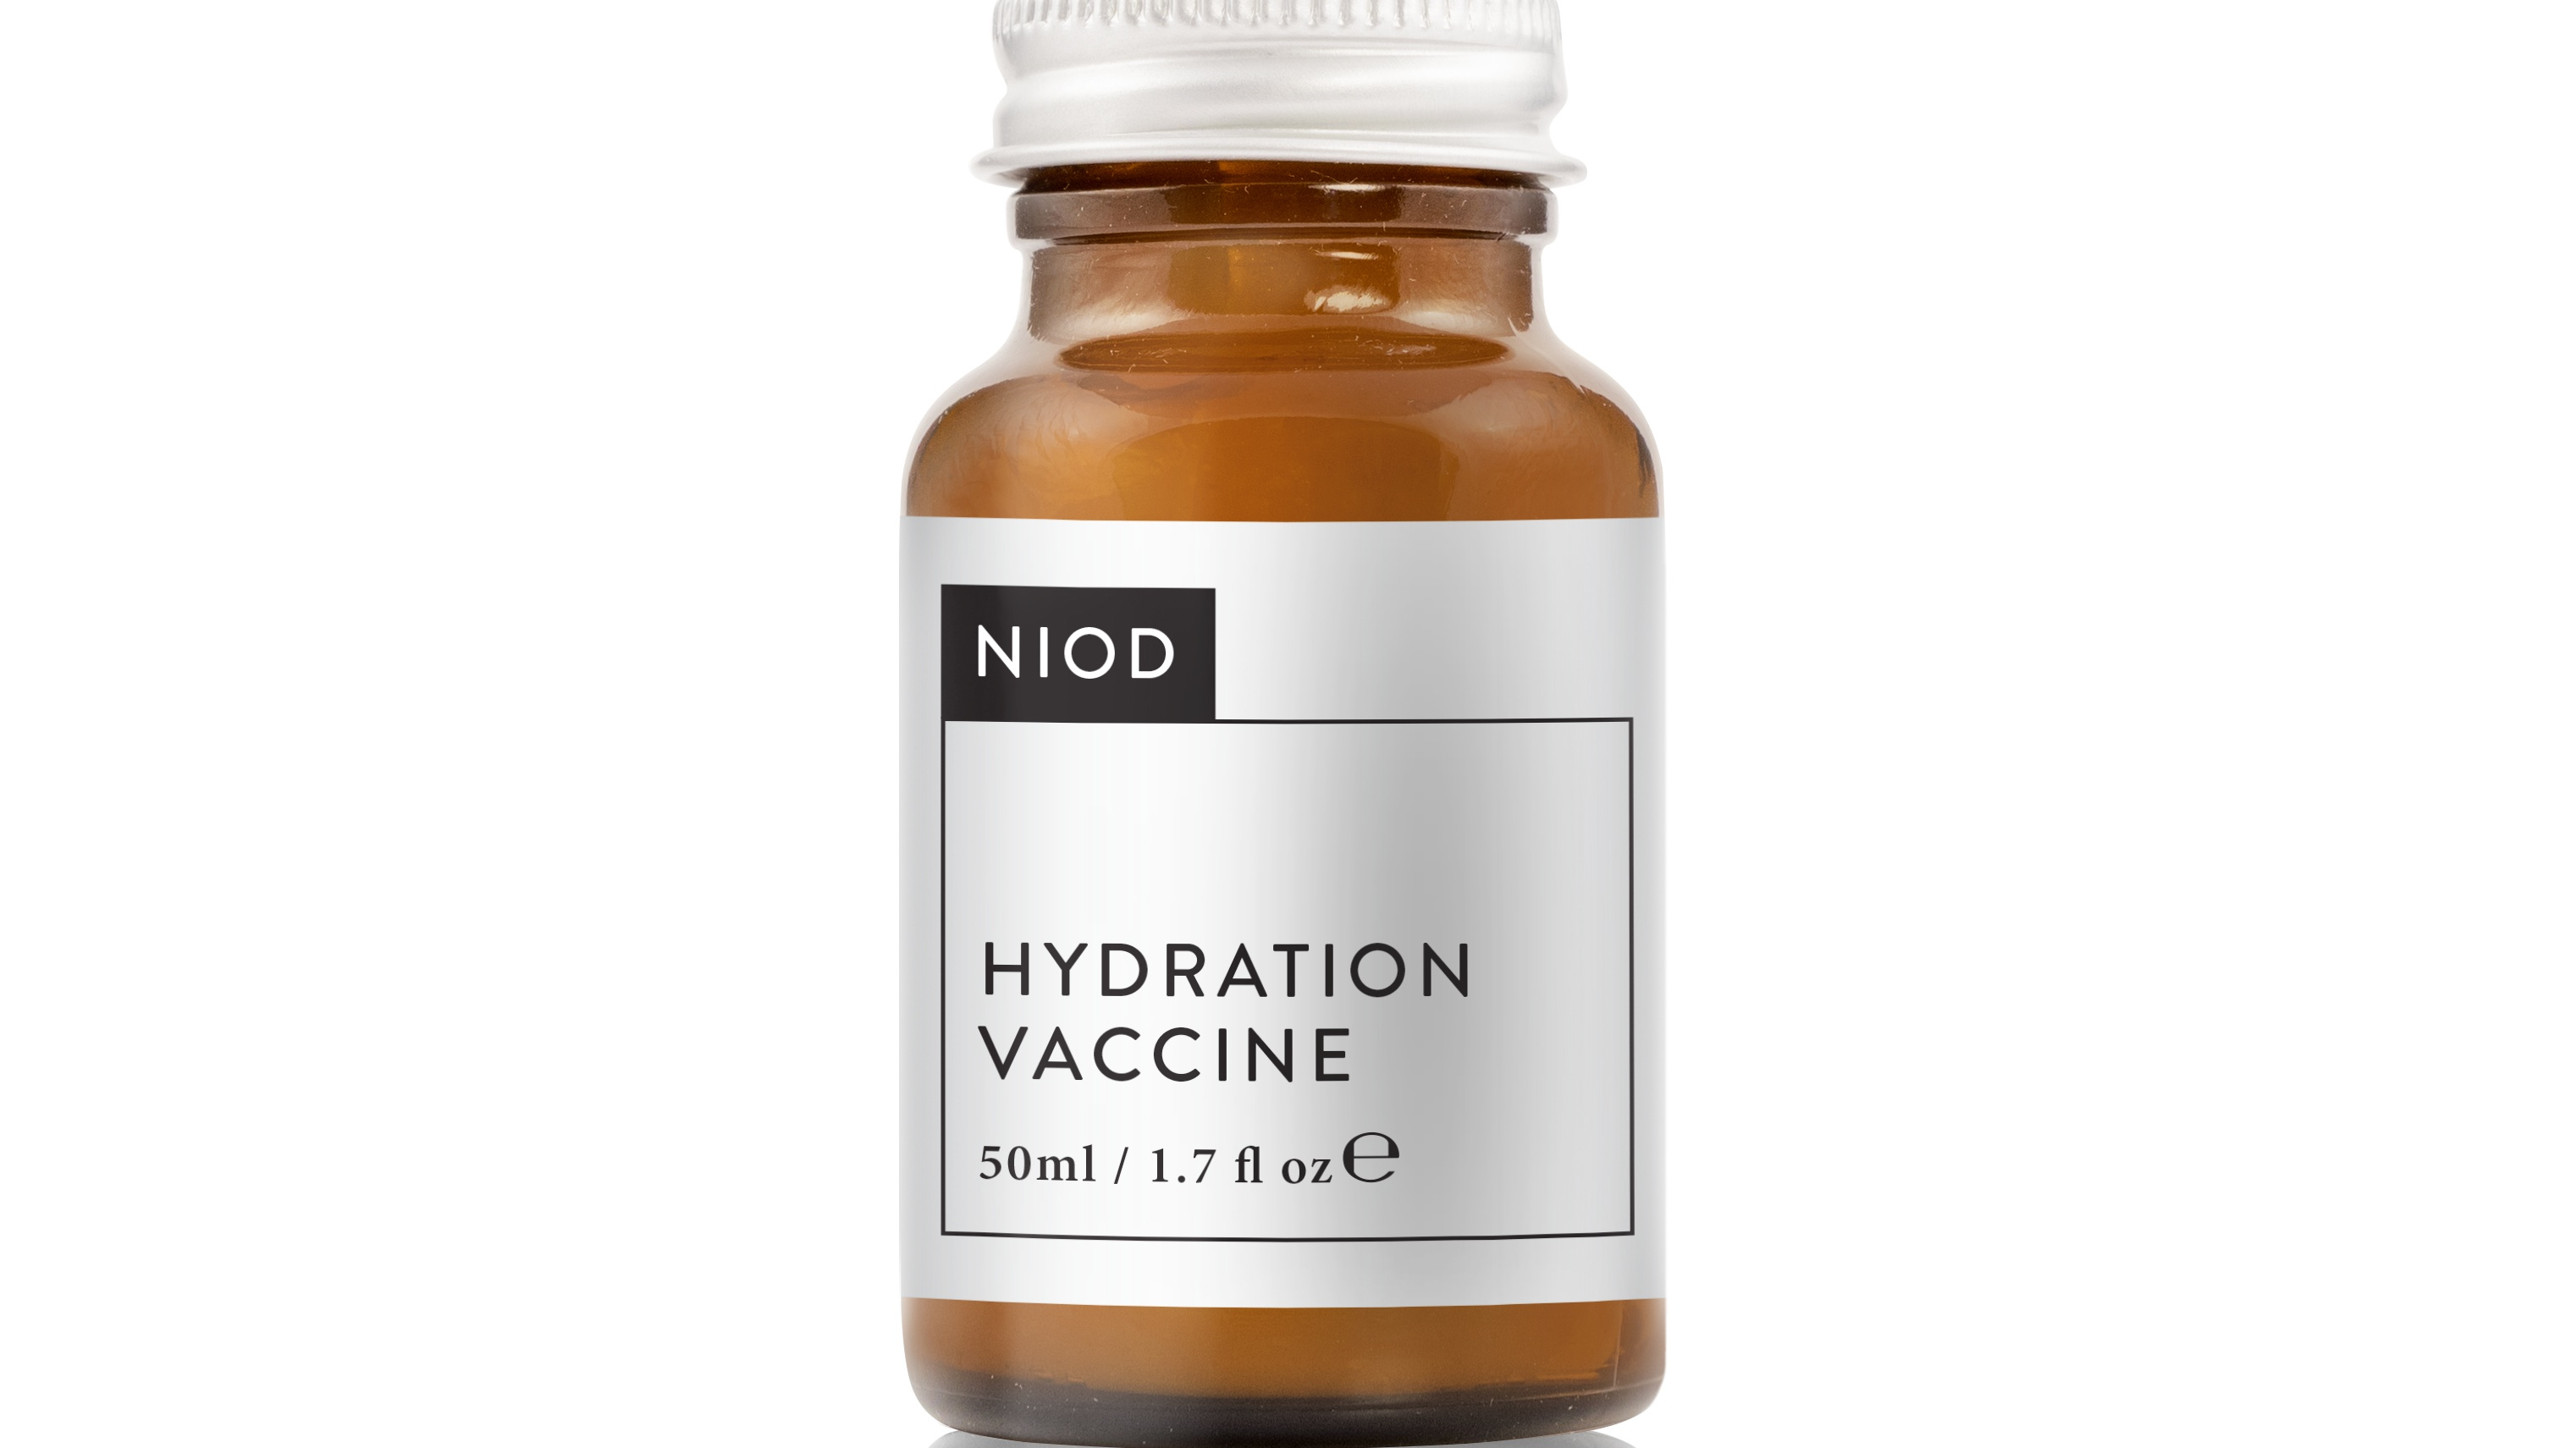 NIOD-Hydration-Vaccine-50ml